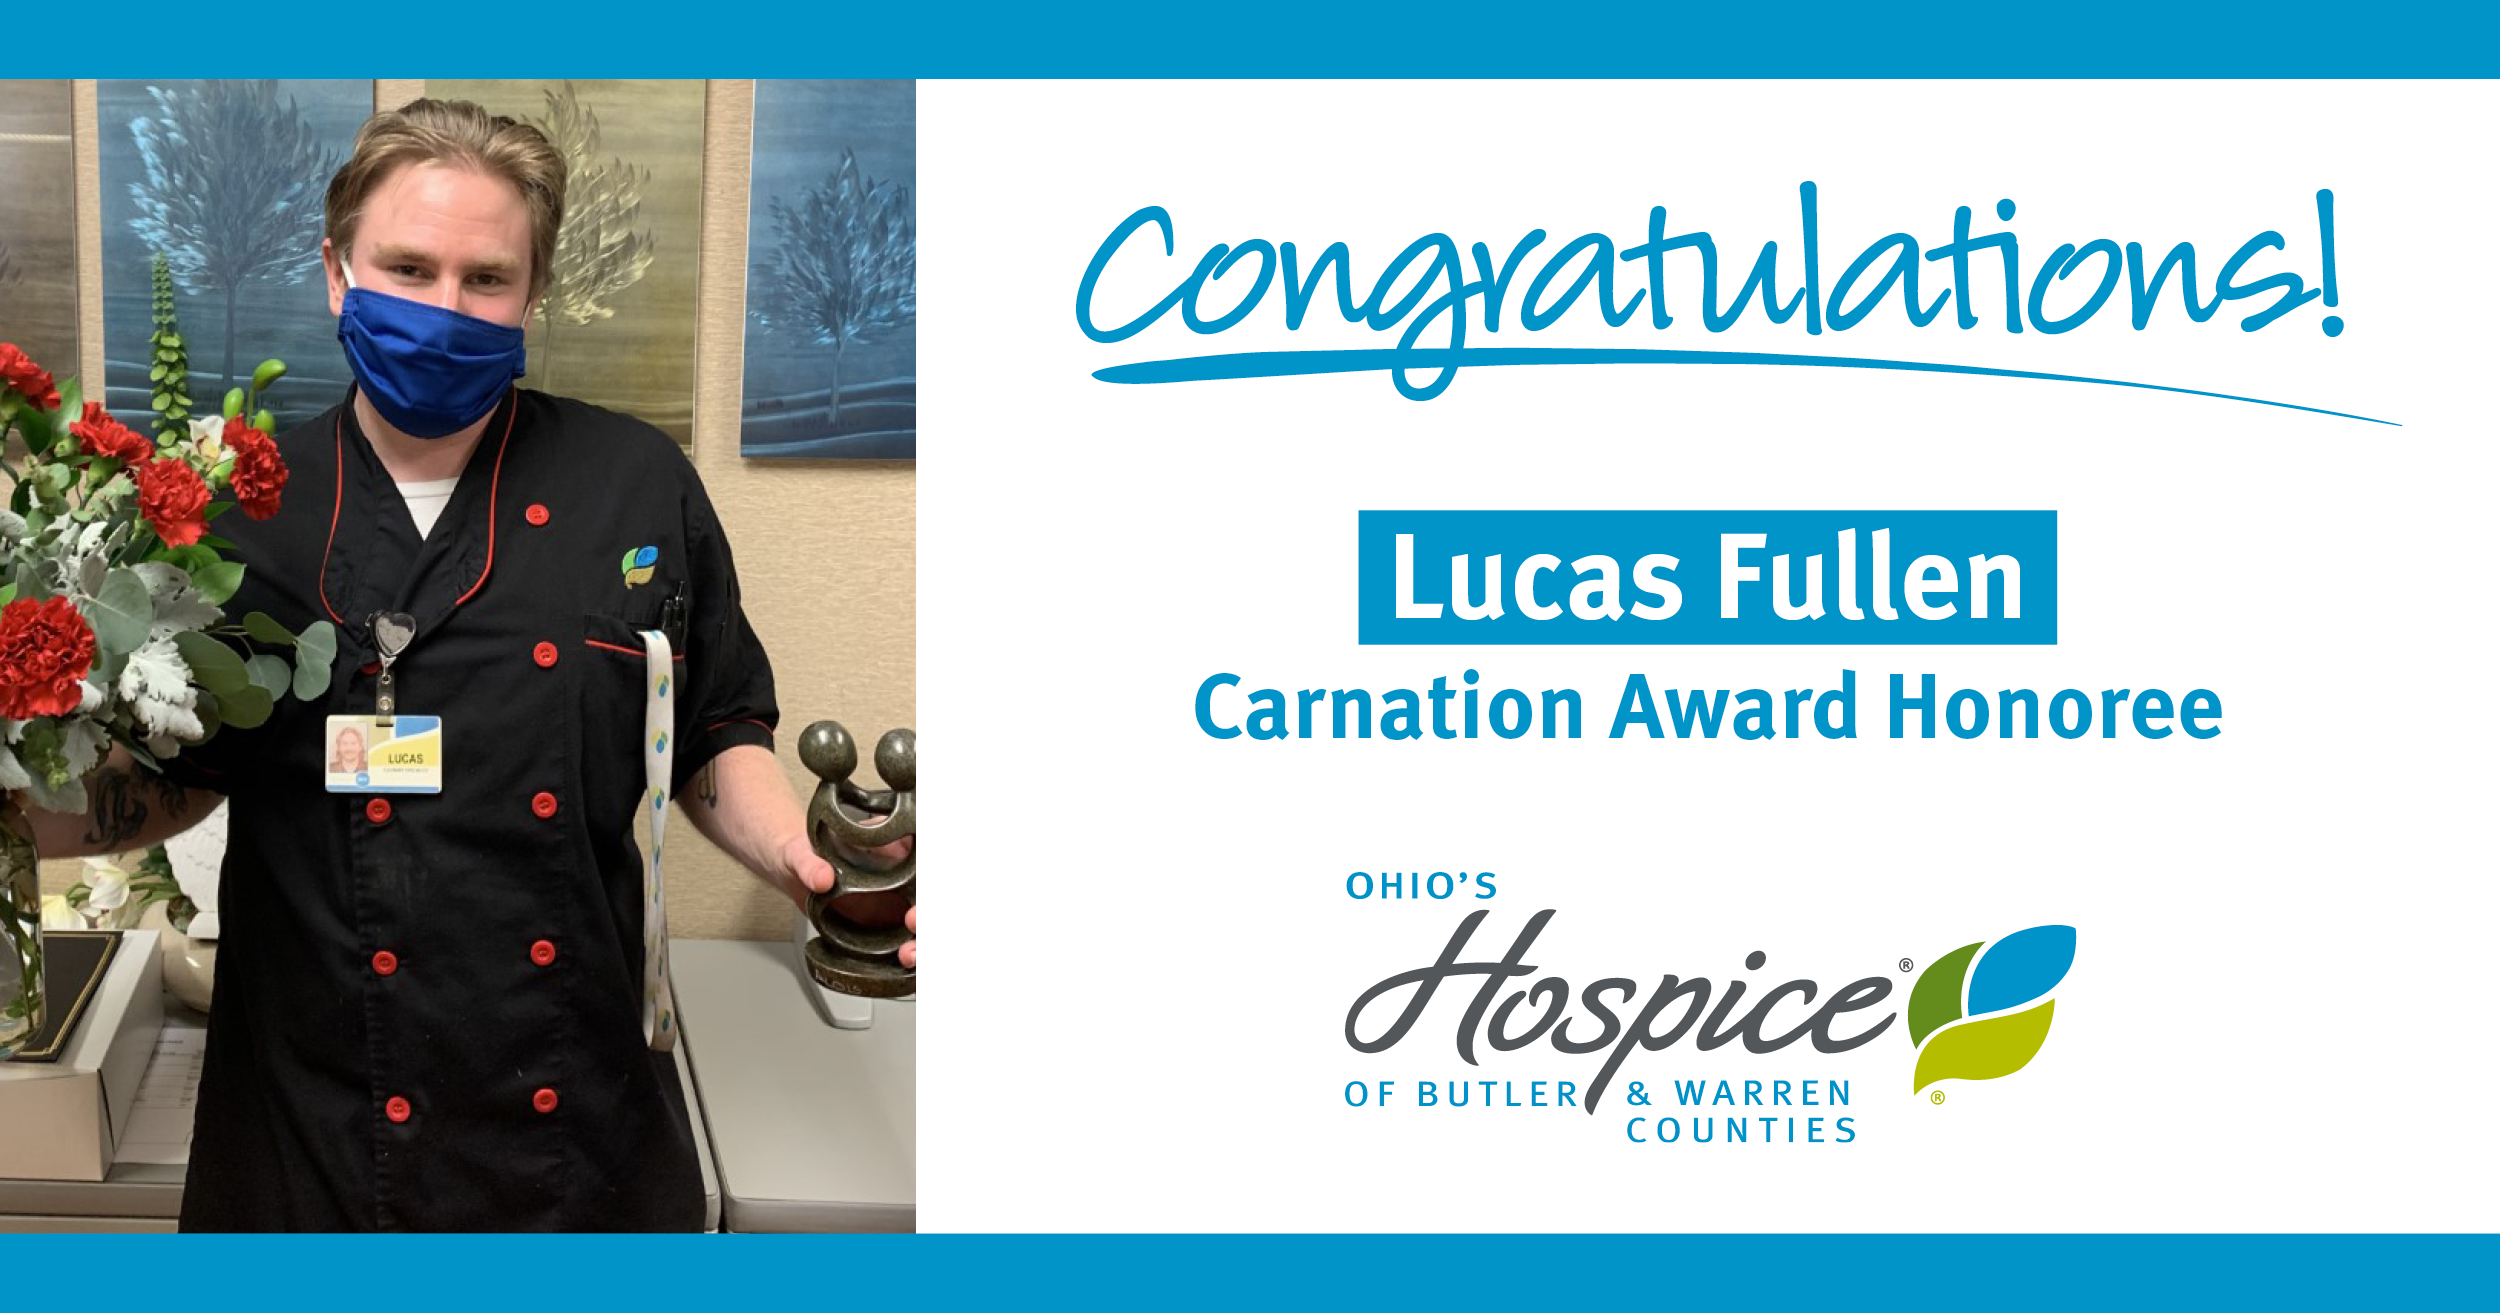 Ohio's Hospice Recognizes Lucas Fullen With Carnation Award